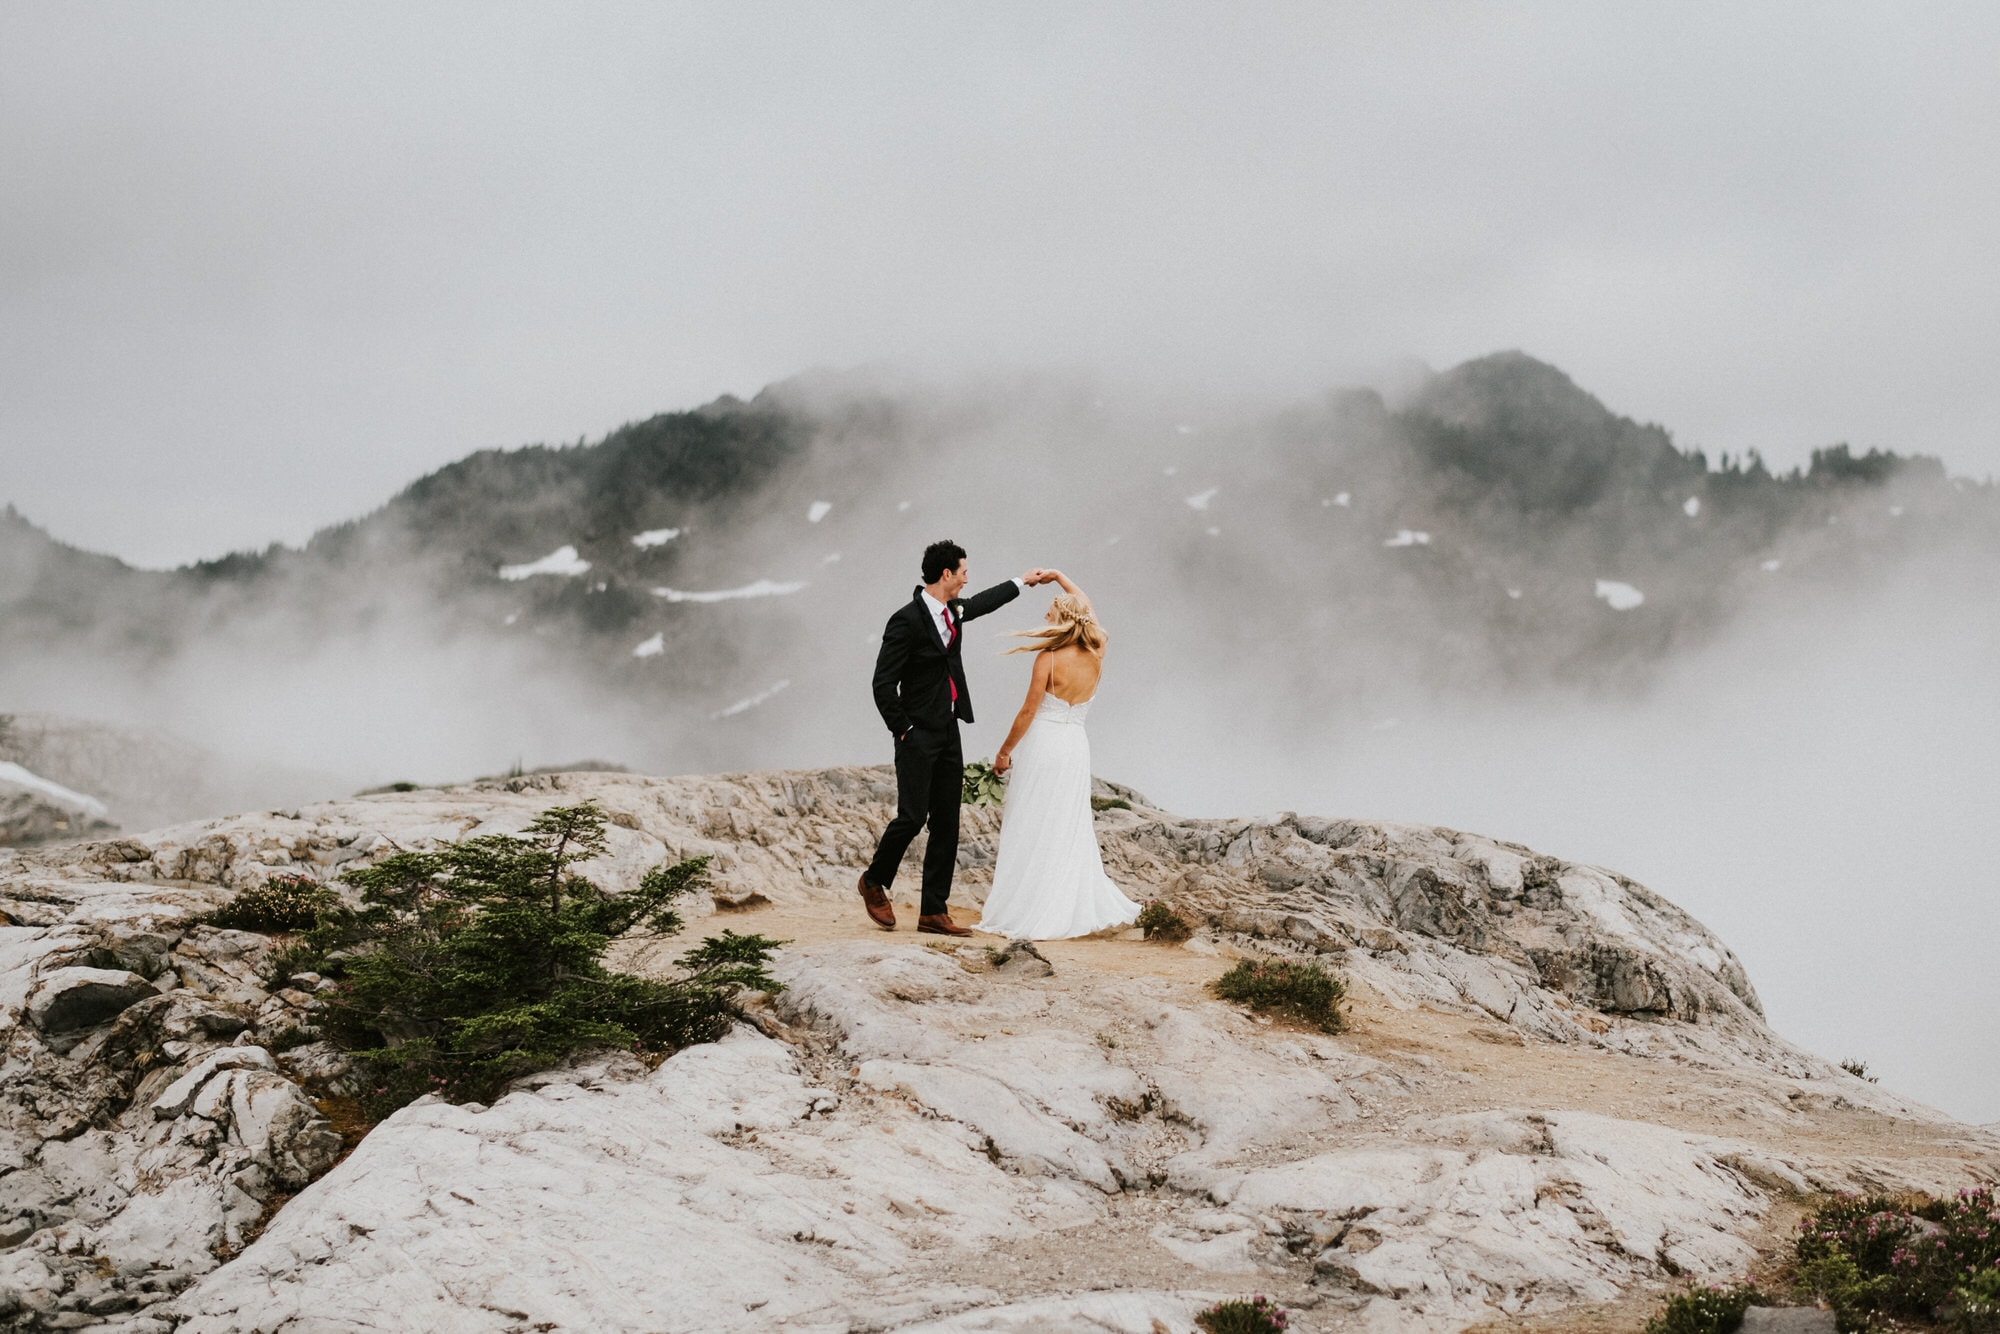 groom dancing with bride on a Washington mountaintop